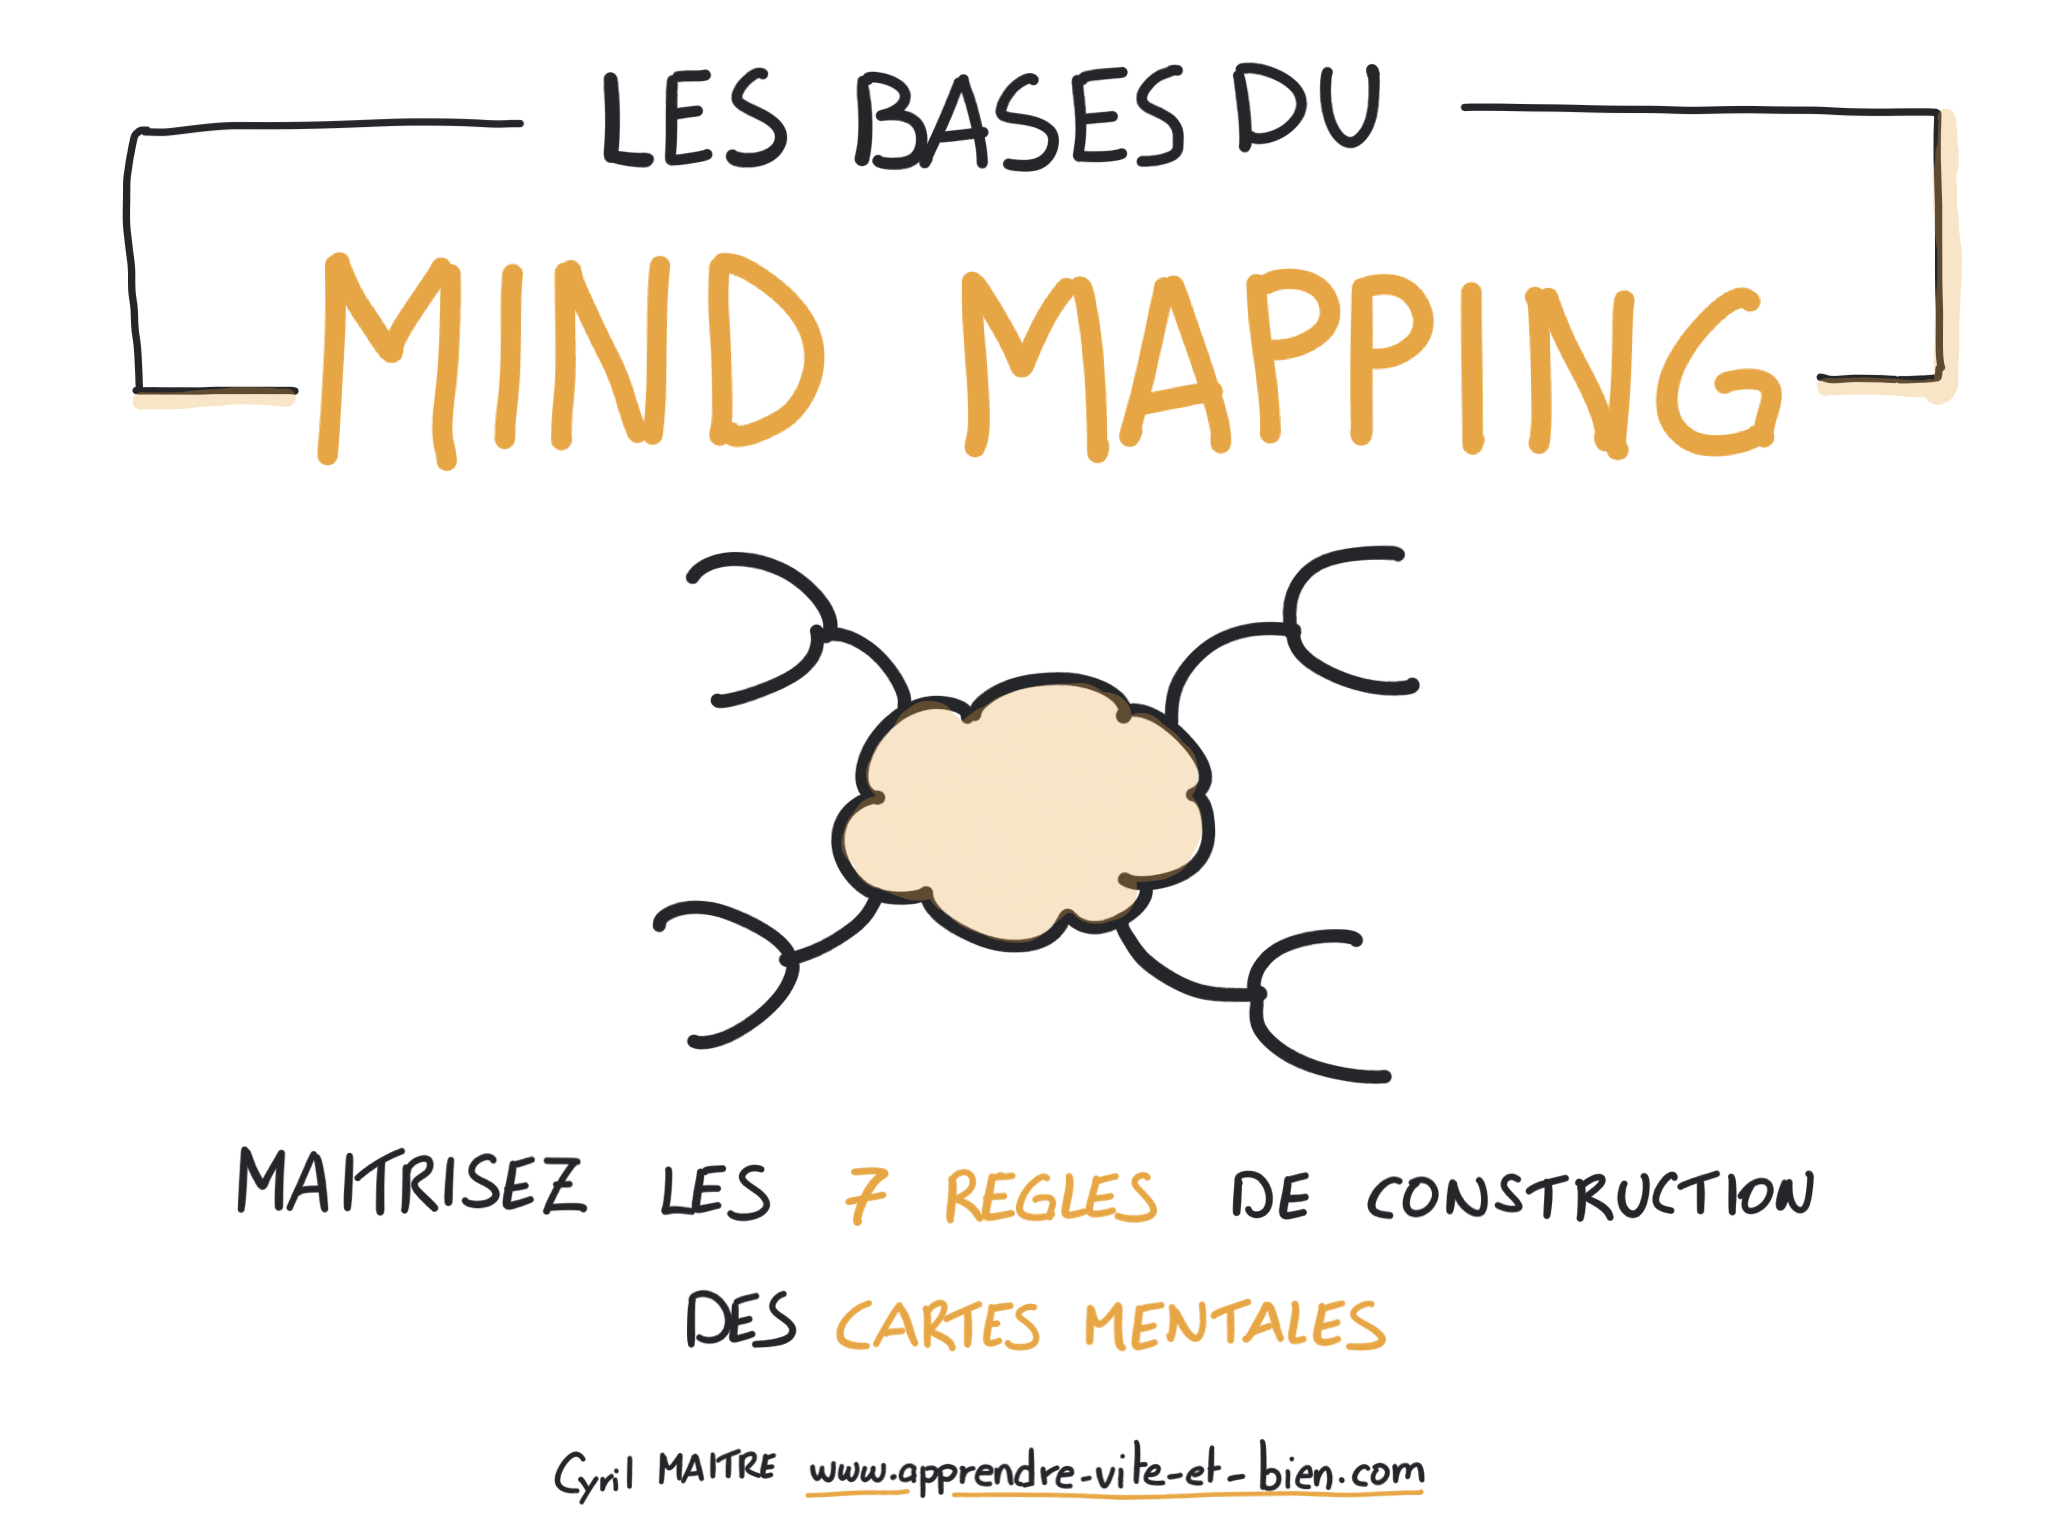 Formation Les bases du mind mapping